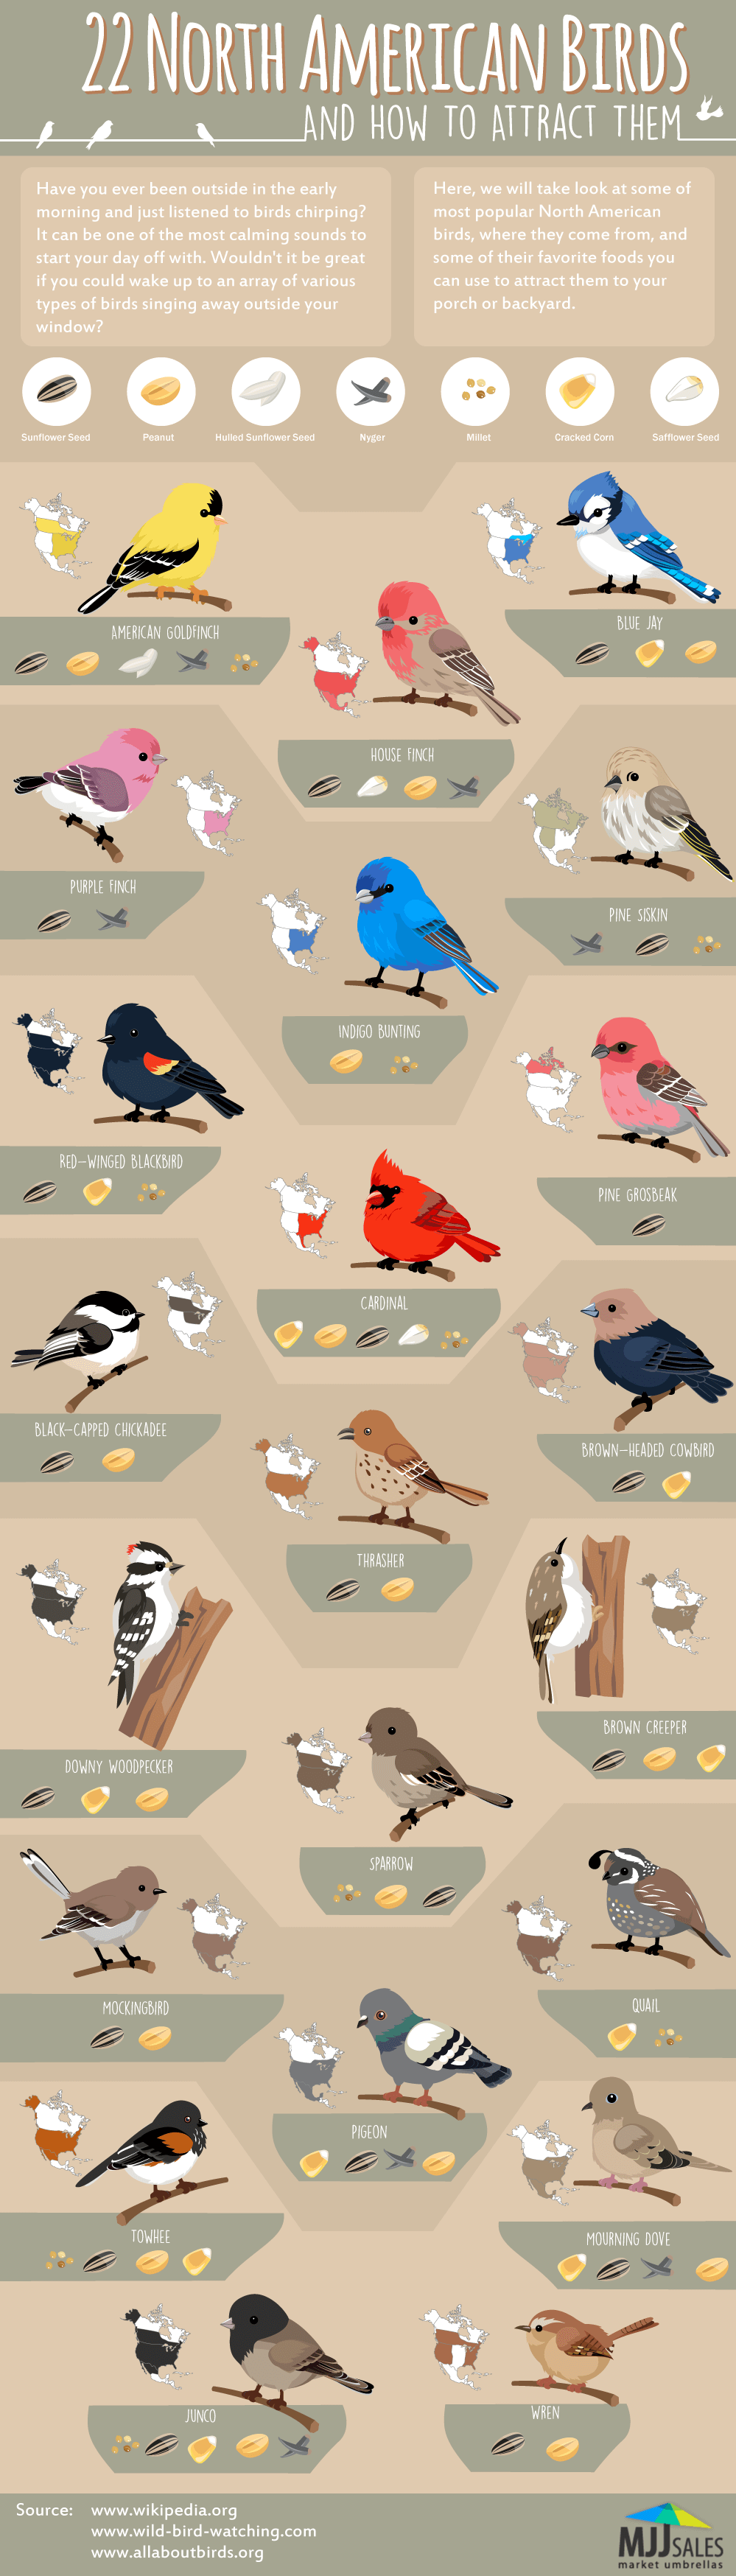 22 North American Birds and How to Attract Them